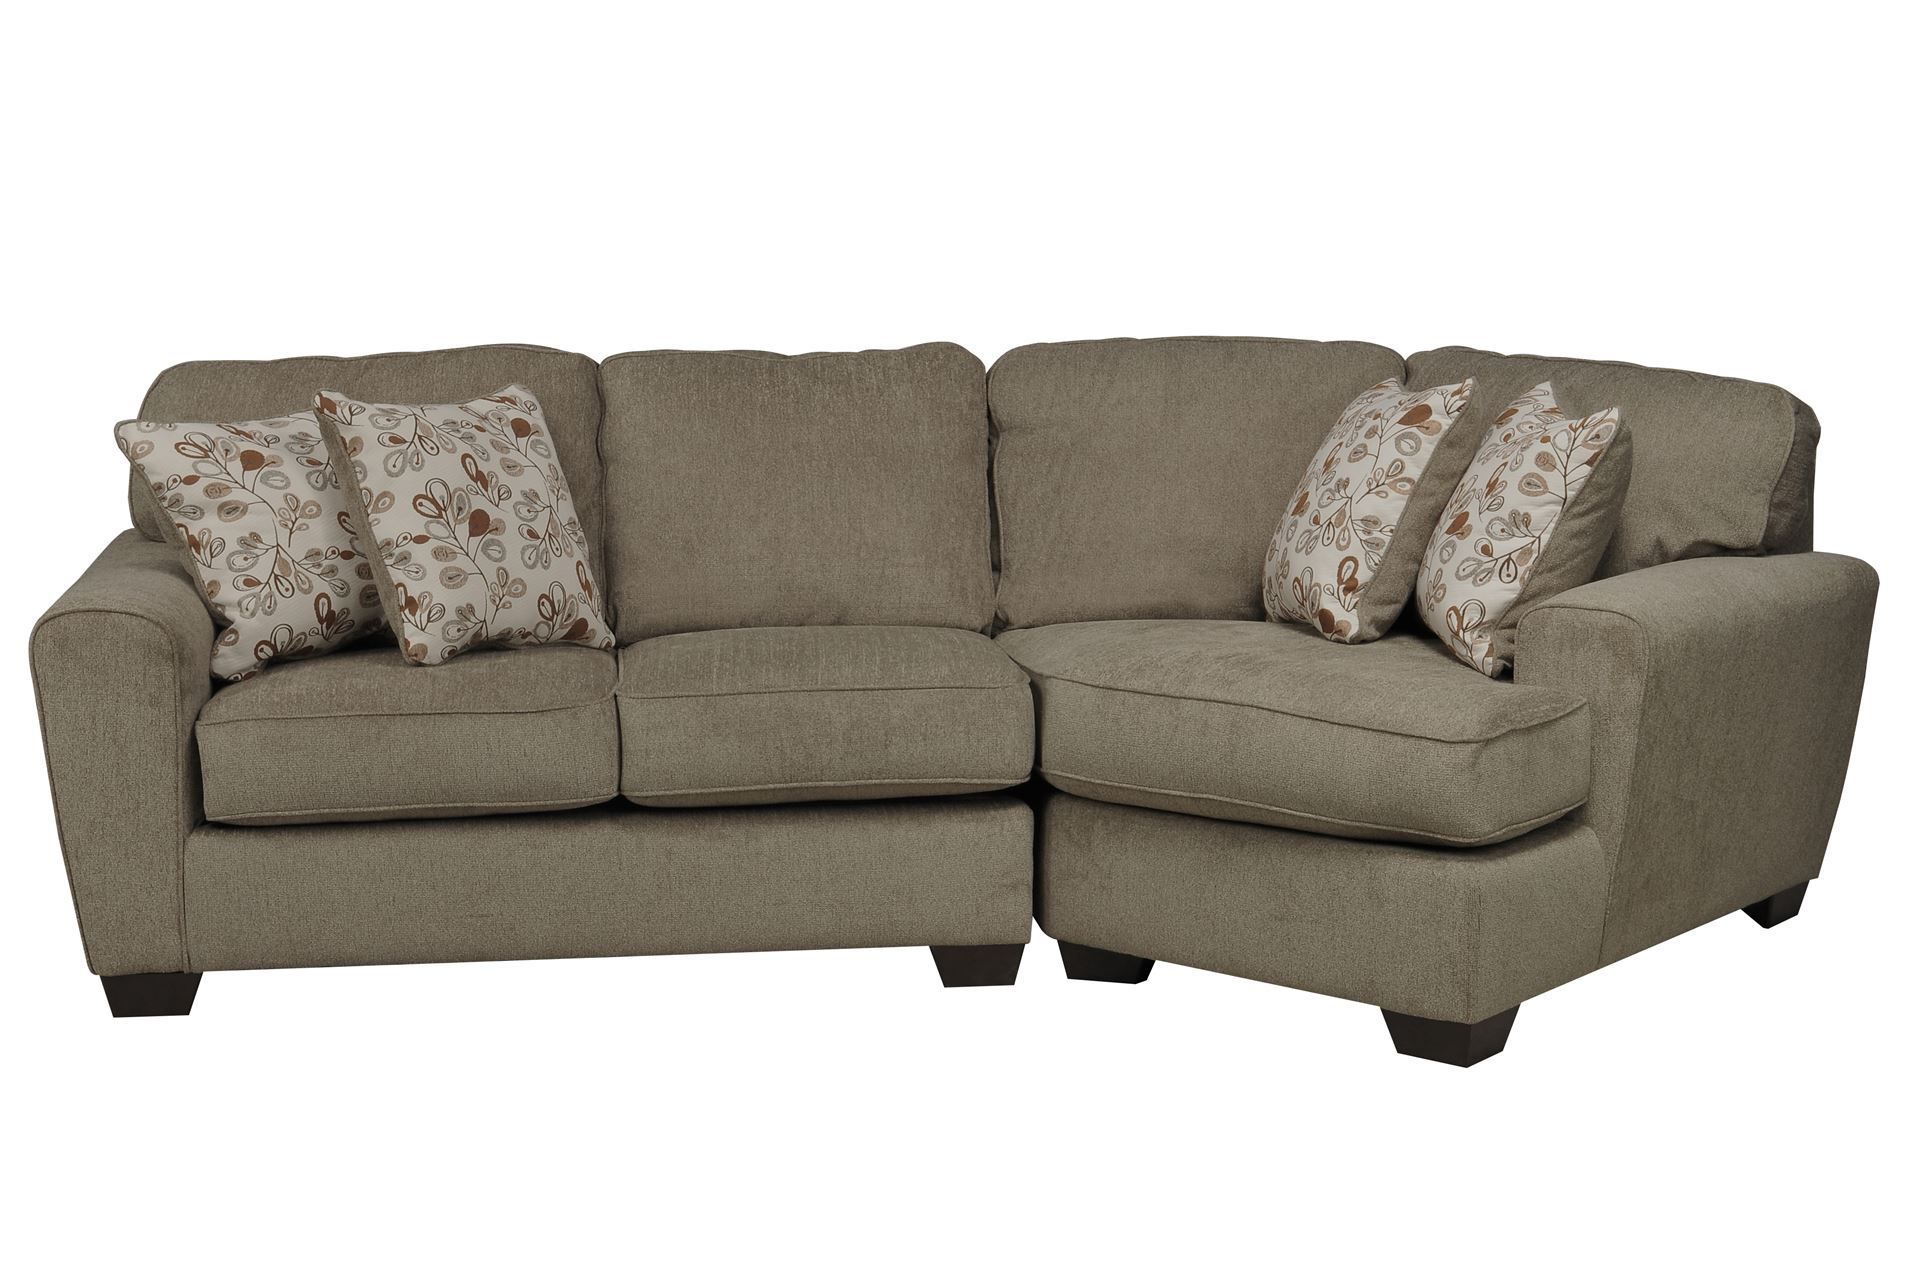 new product 7841f 08b6a o) A Cuddle Corner (o: Patola Park 2 Piece Sectional W/Raf ...